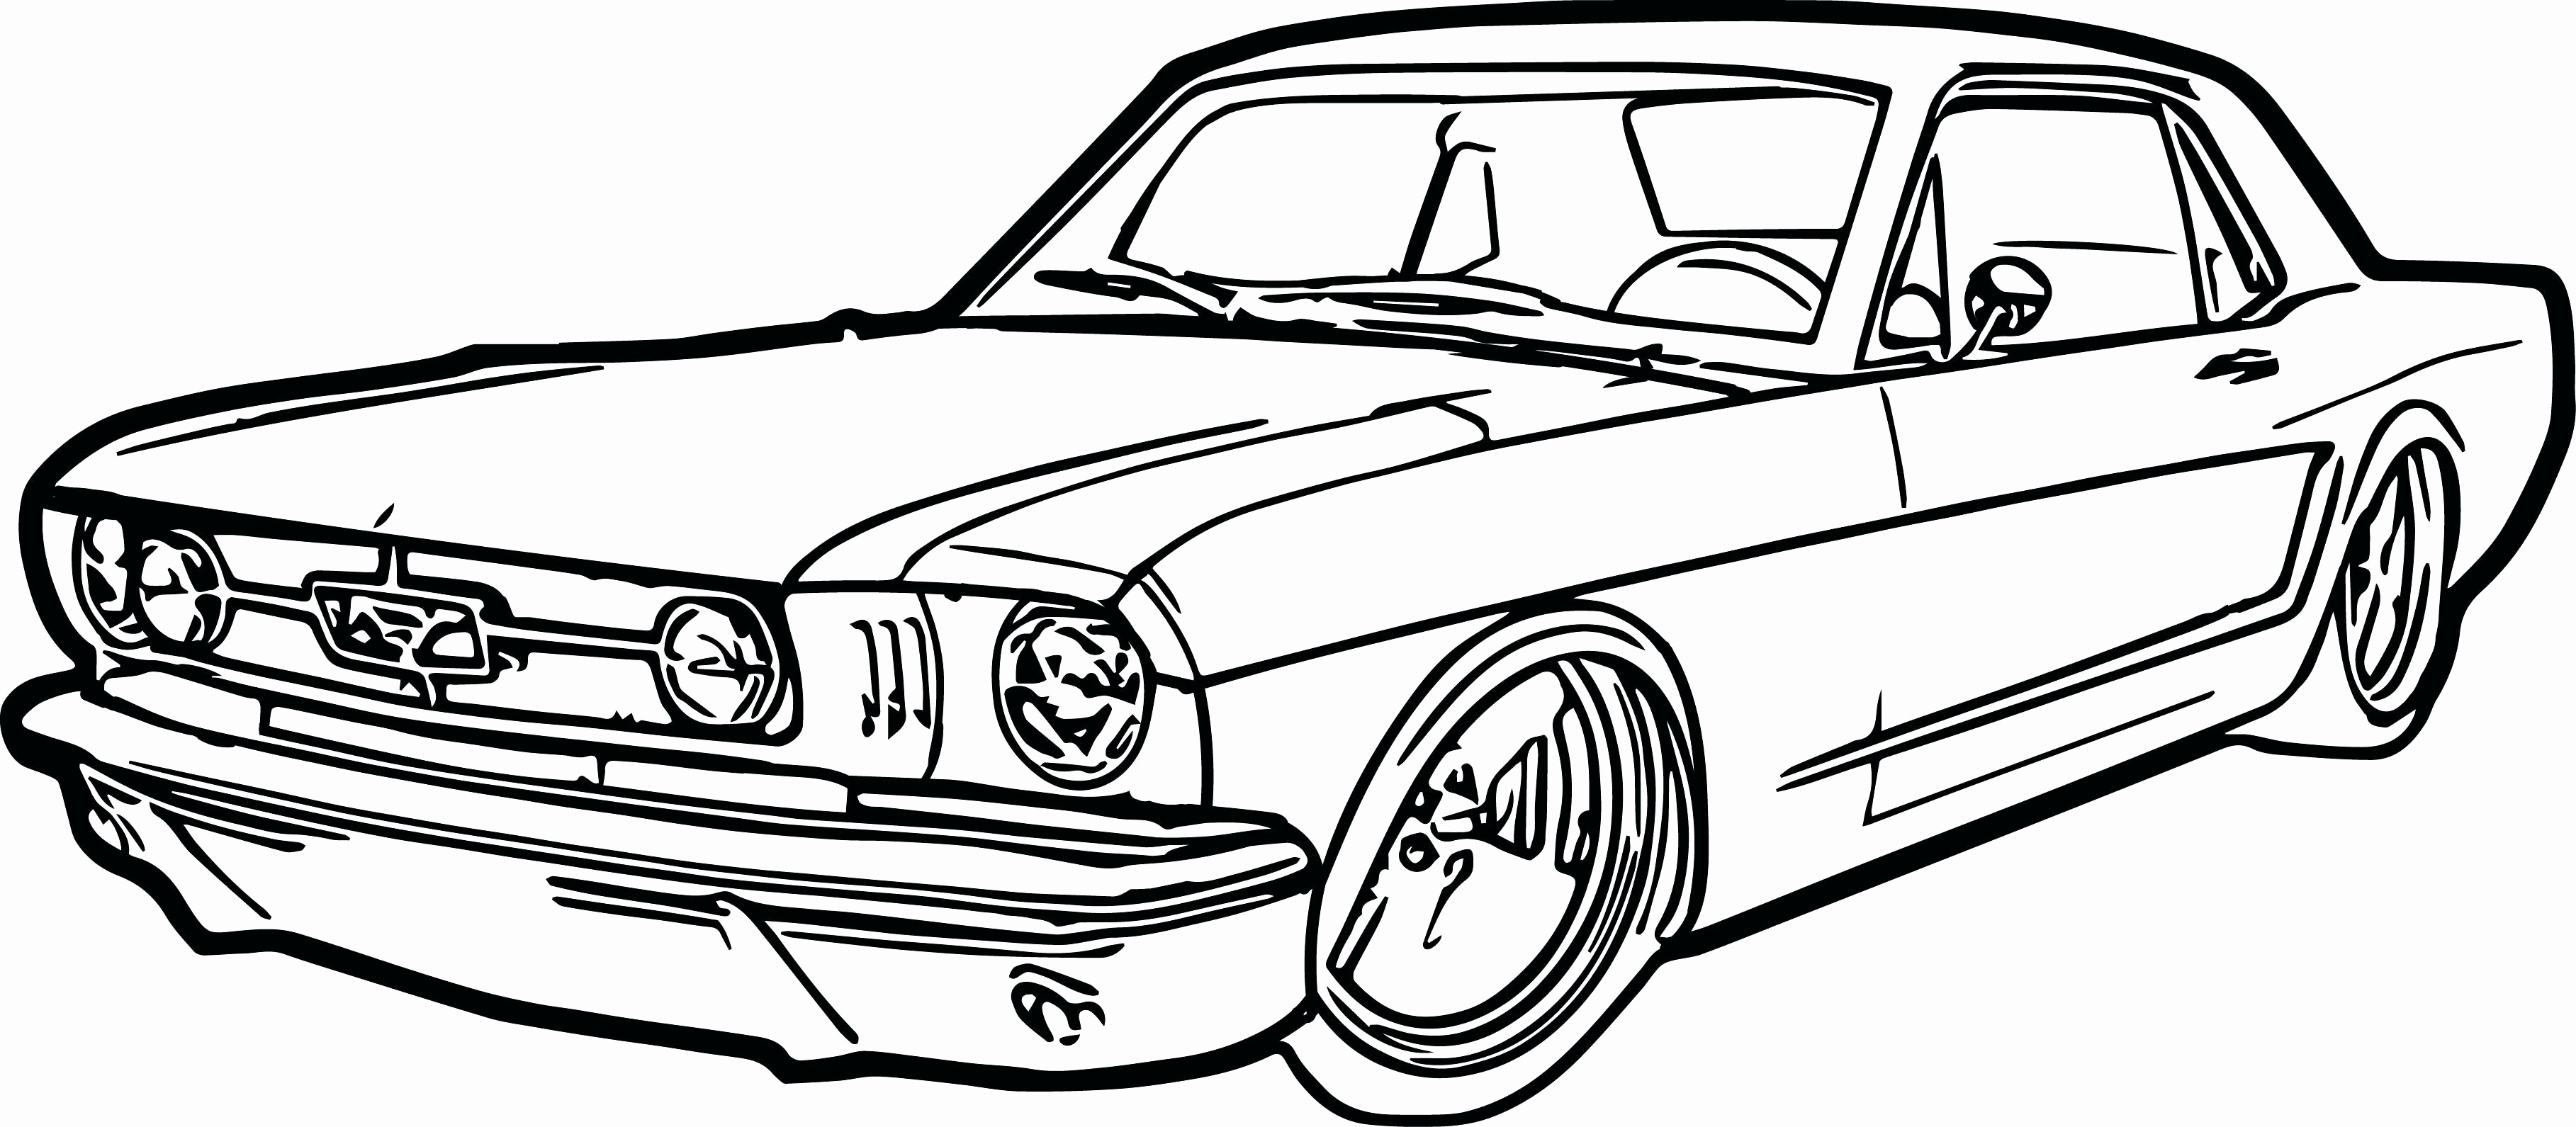 drag car coloring pages drag racing coloring pages coloring pages pages drag coloring car